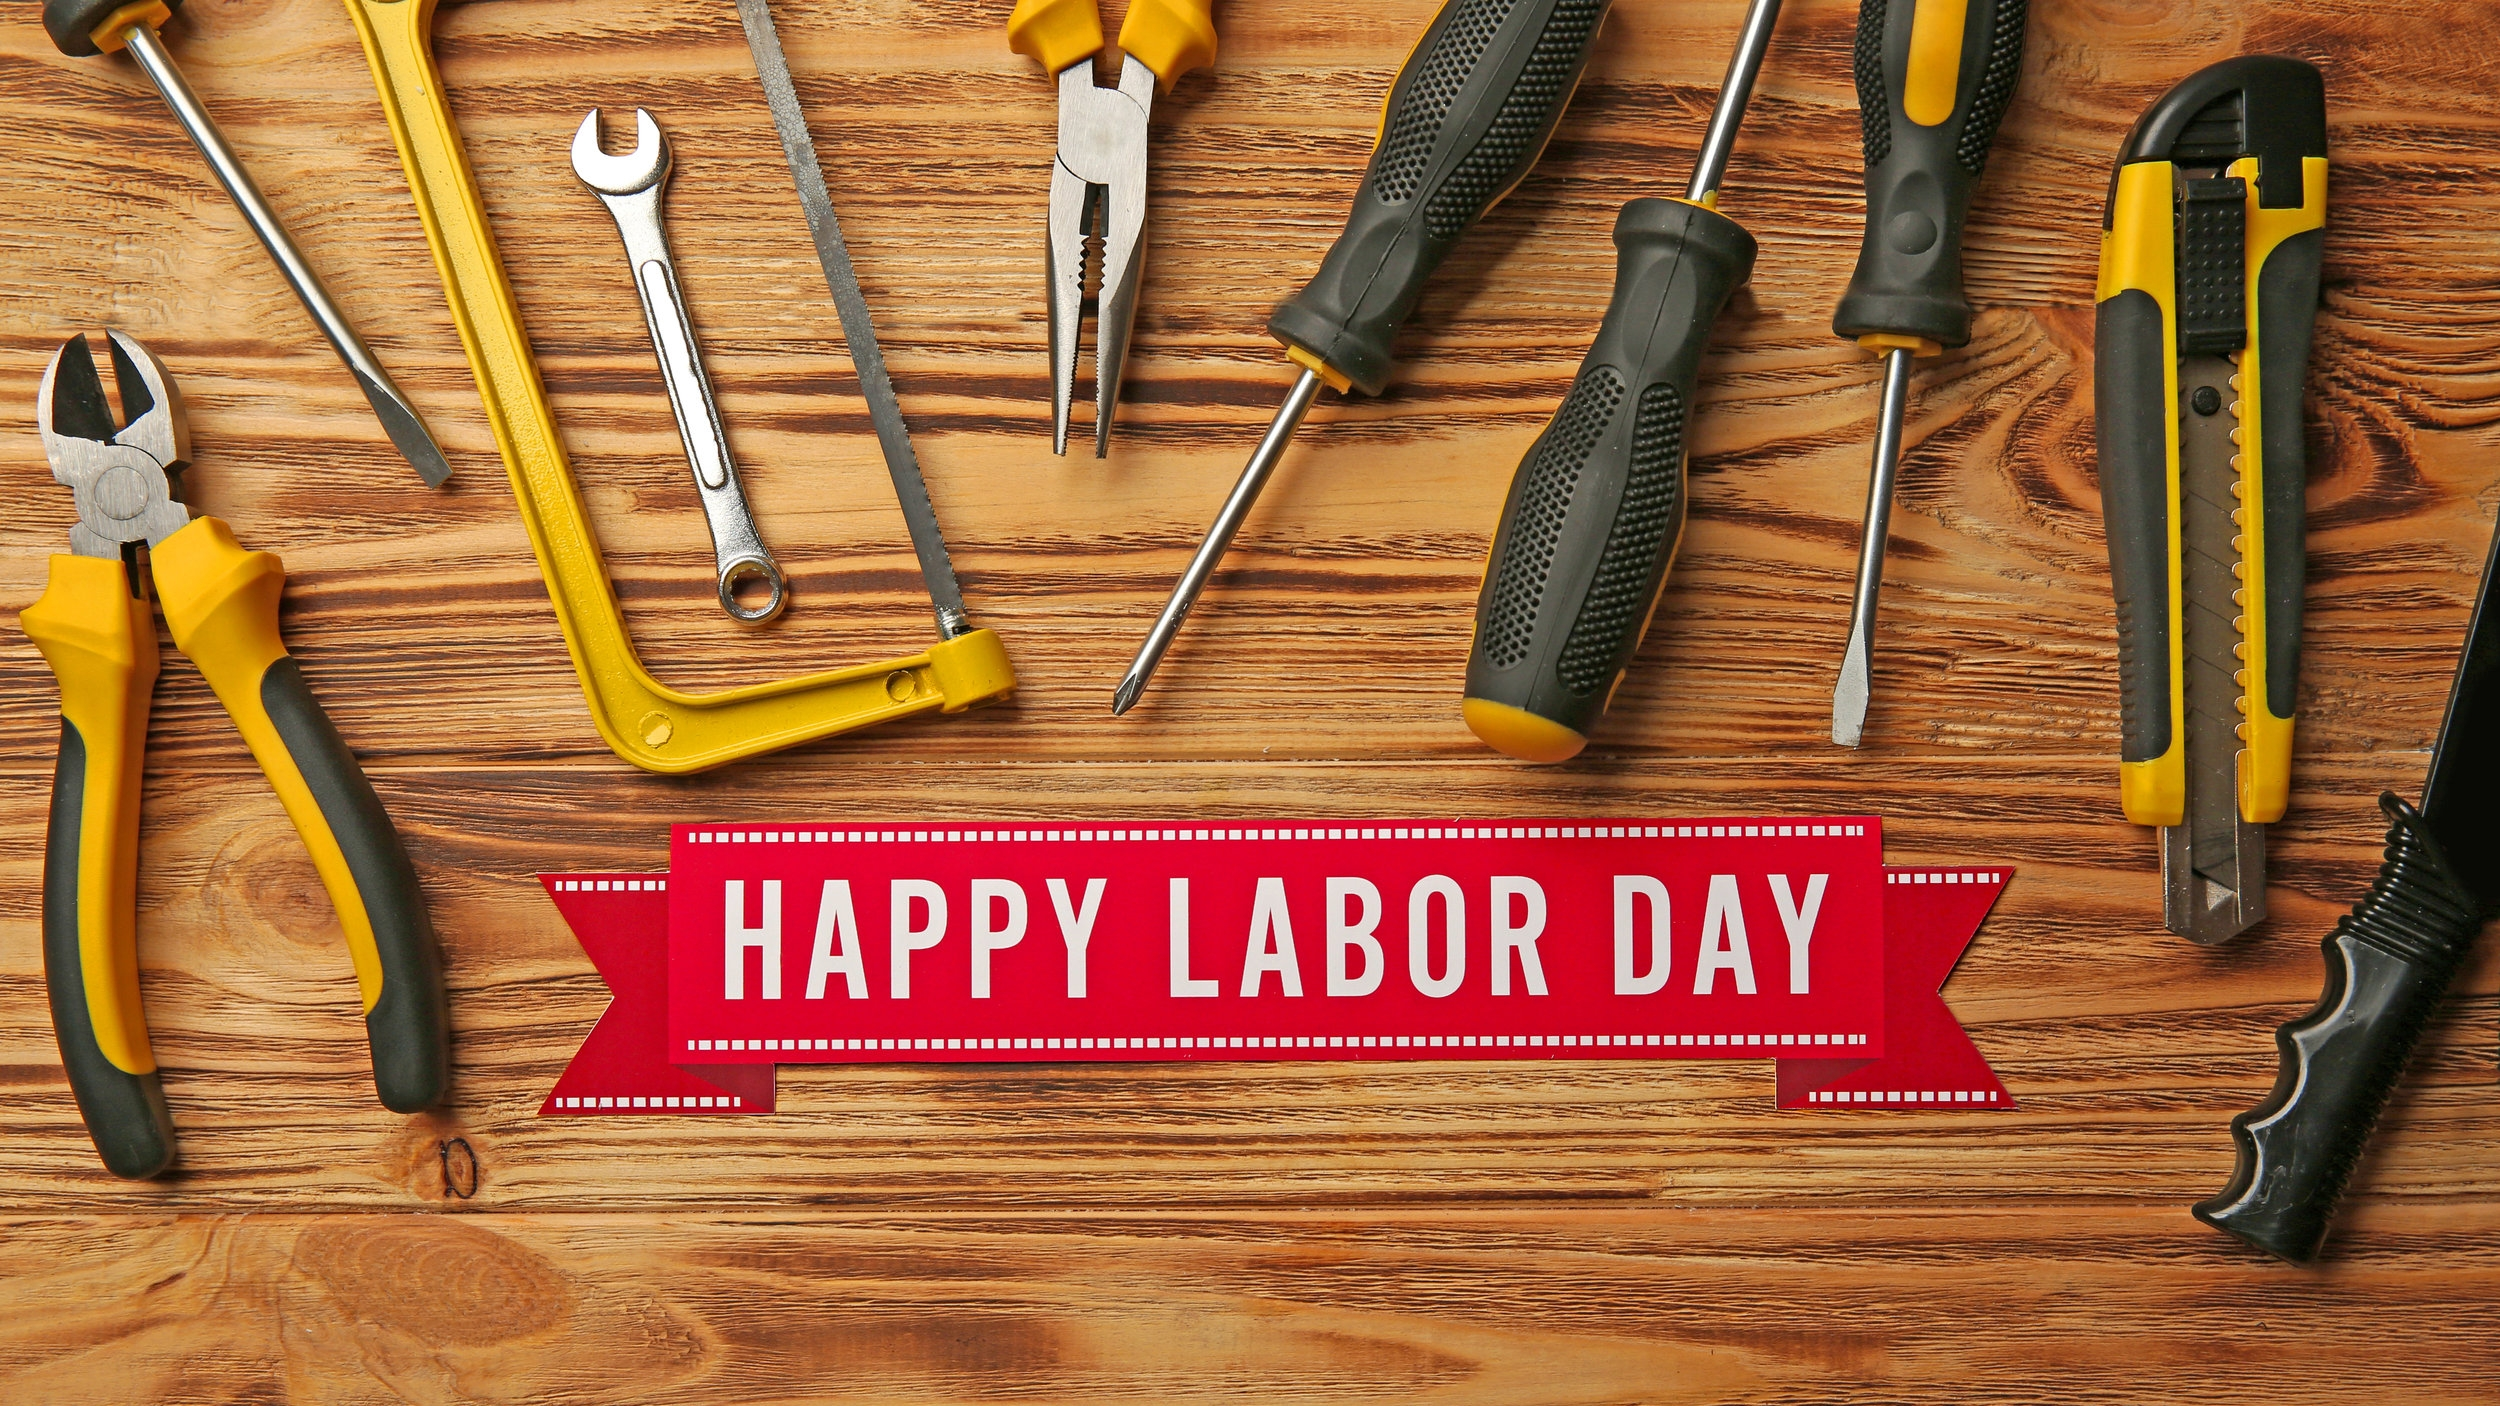 bigstock-Happy-Labor-Day-holiday-and-to-140794610.jpg